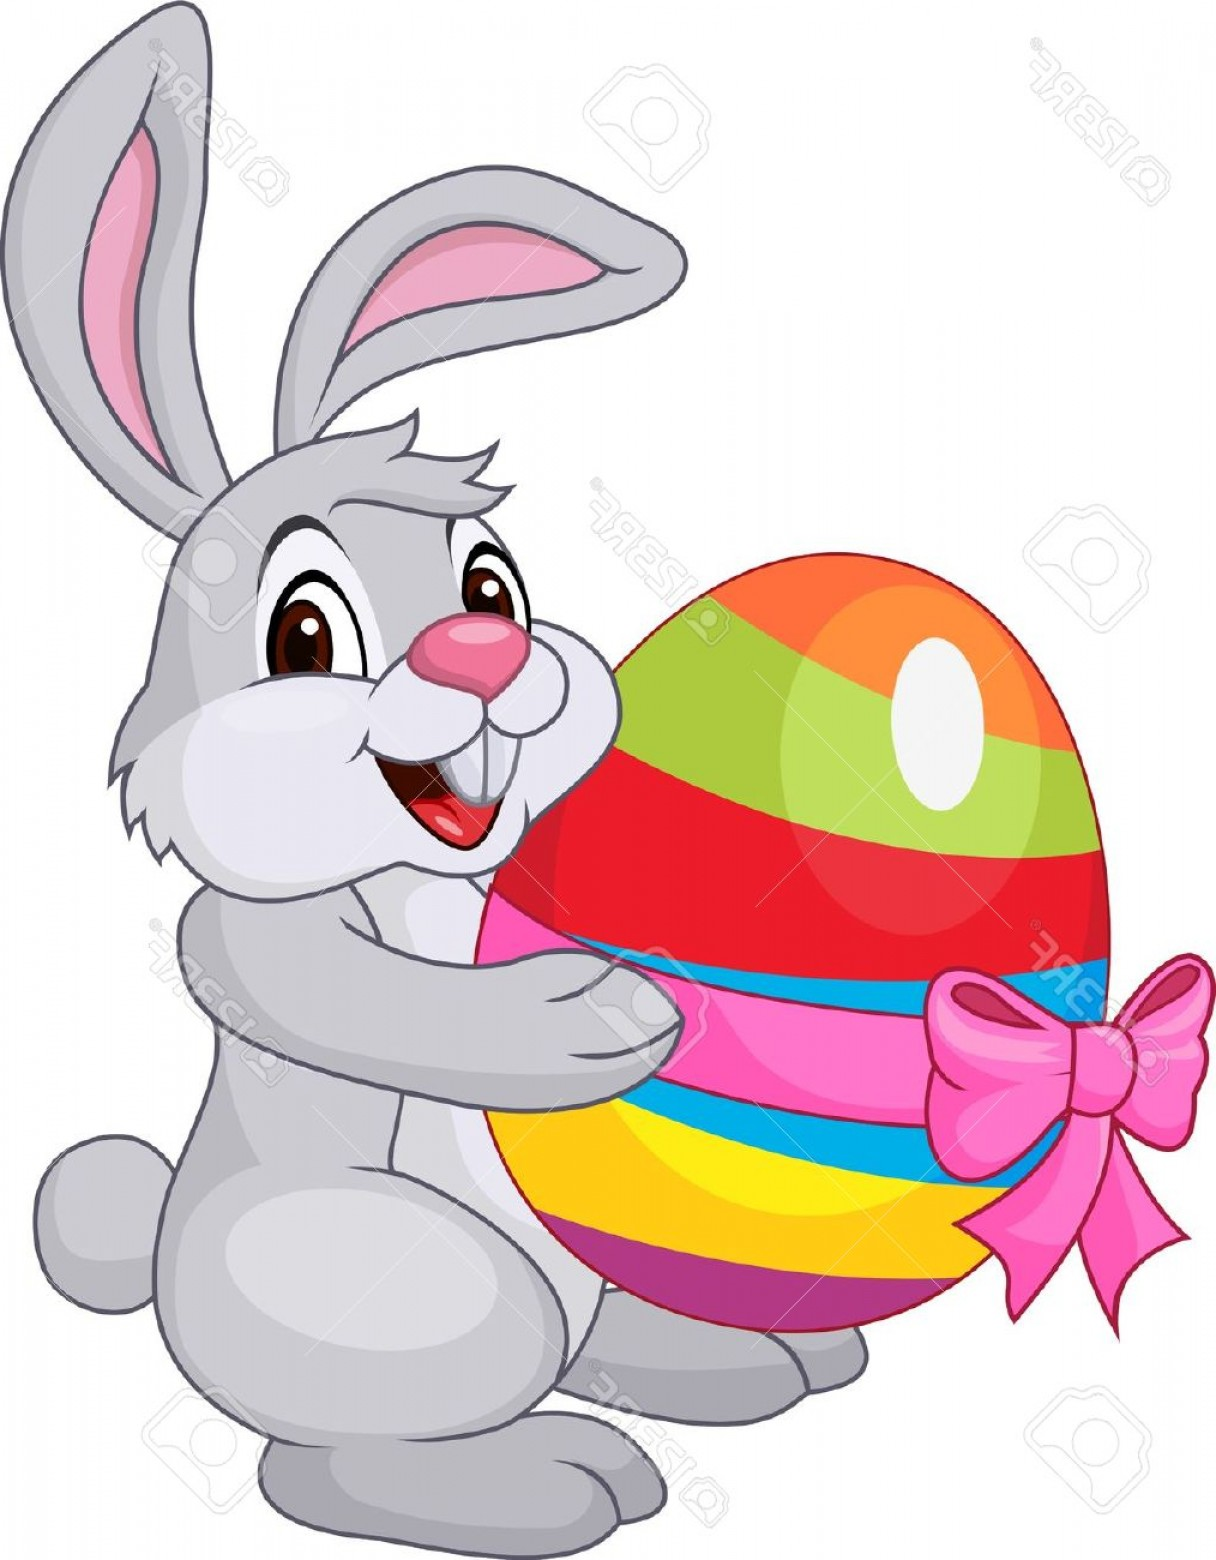 Image Vector Clip Art Bunny Bunny: File Cute Rabbit With Easter Egg Stock Vector Easter Bunny Cartoon